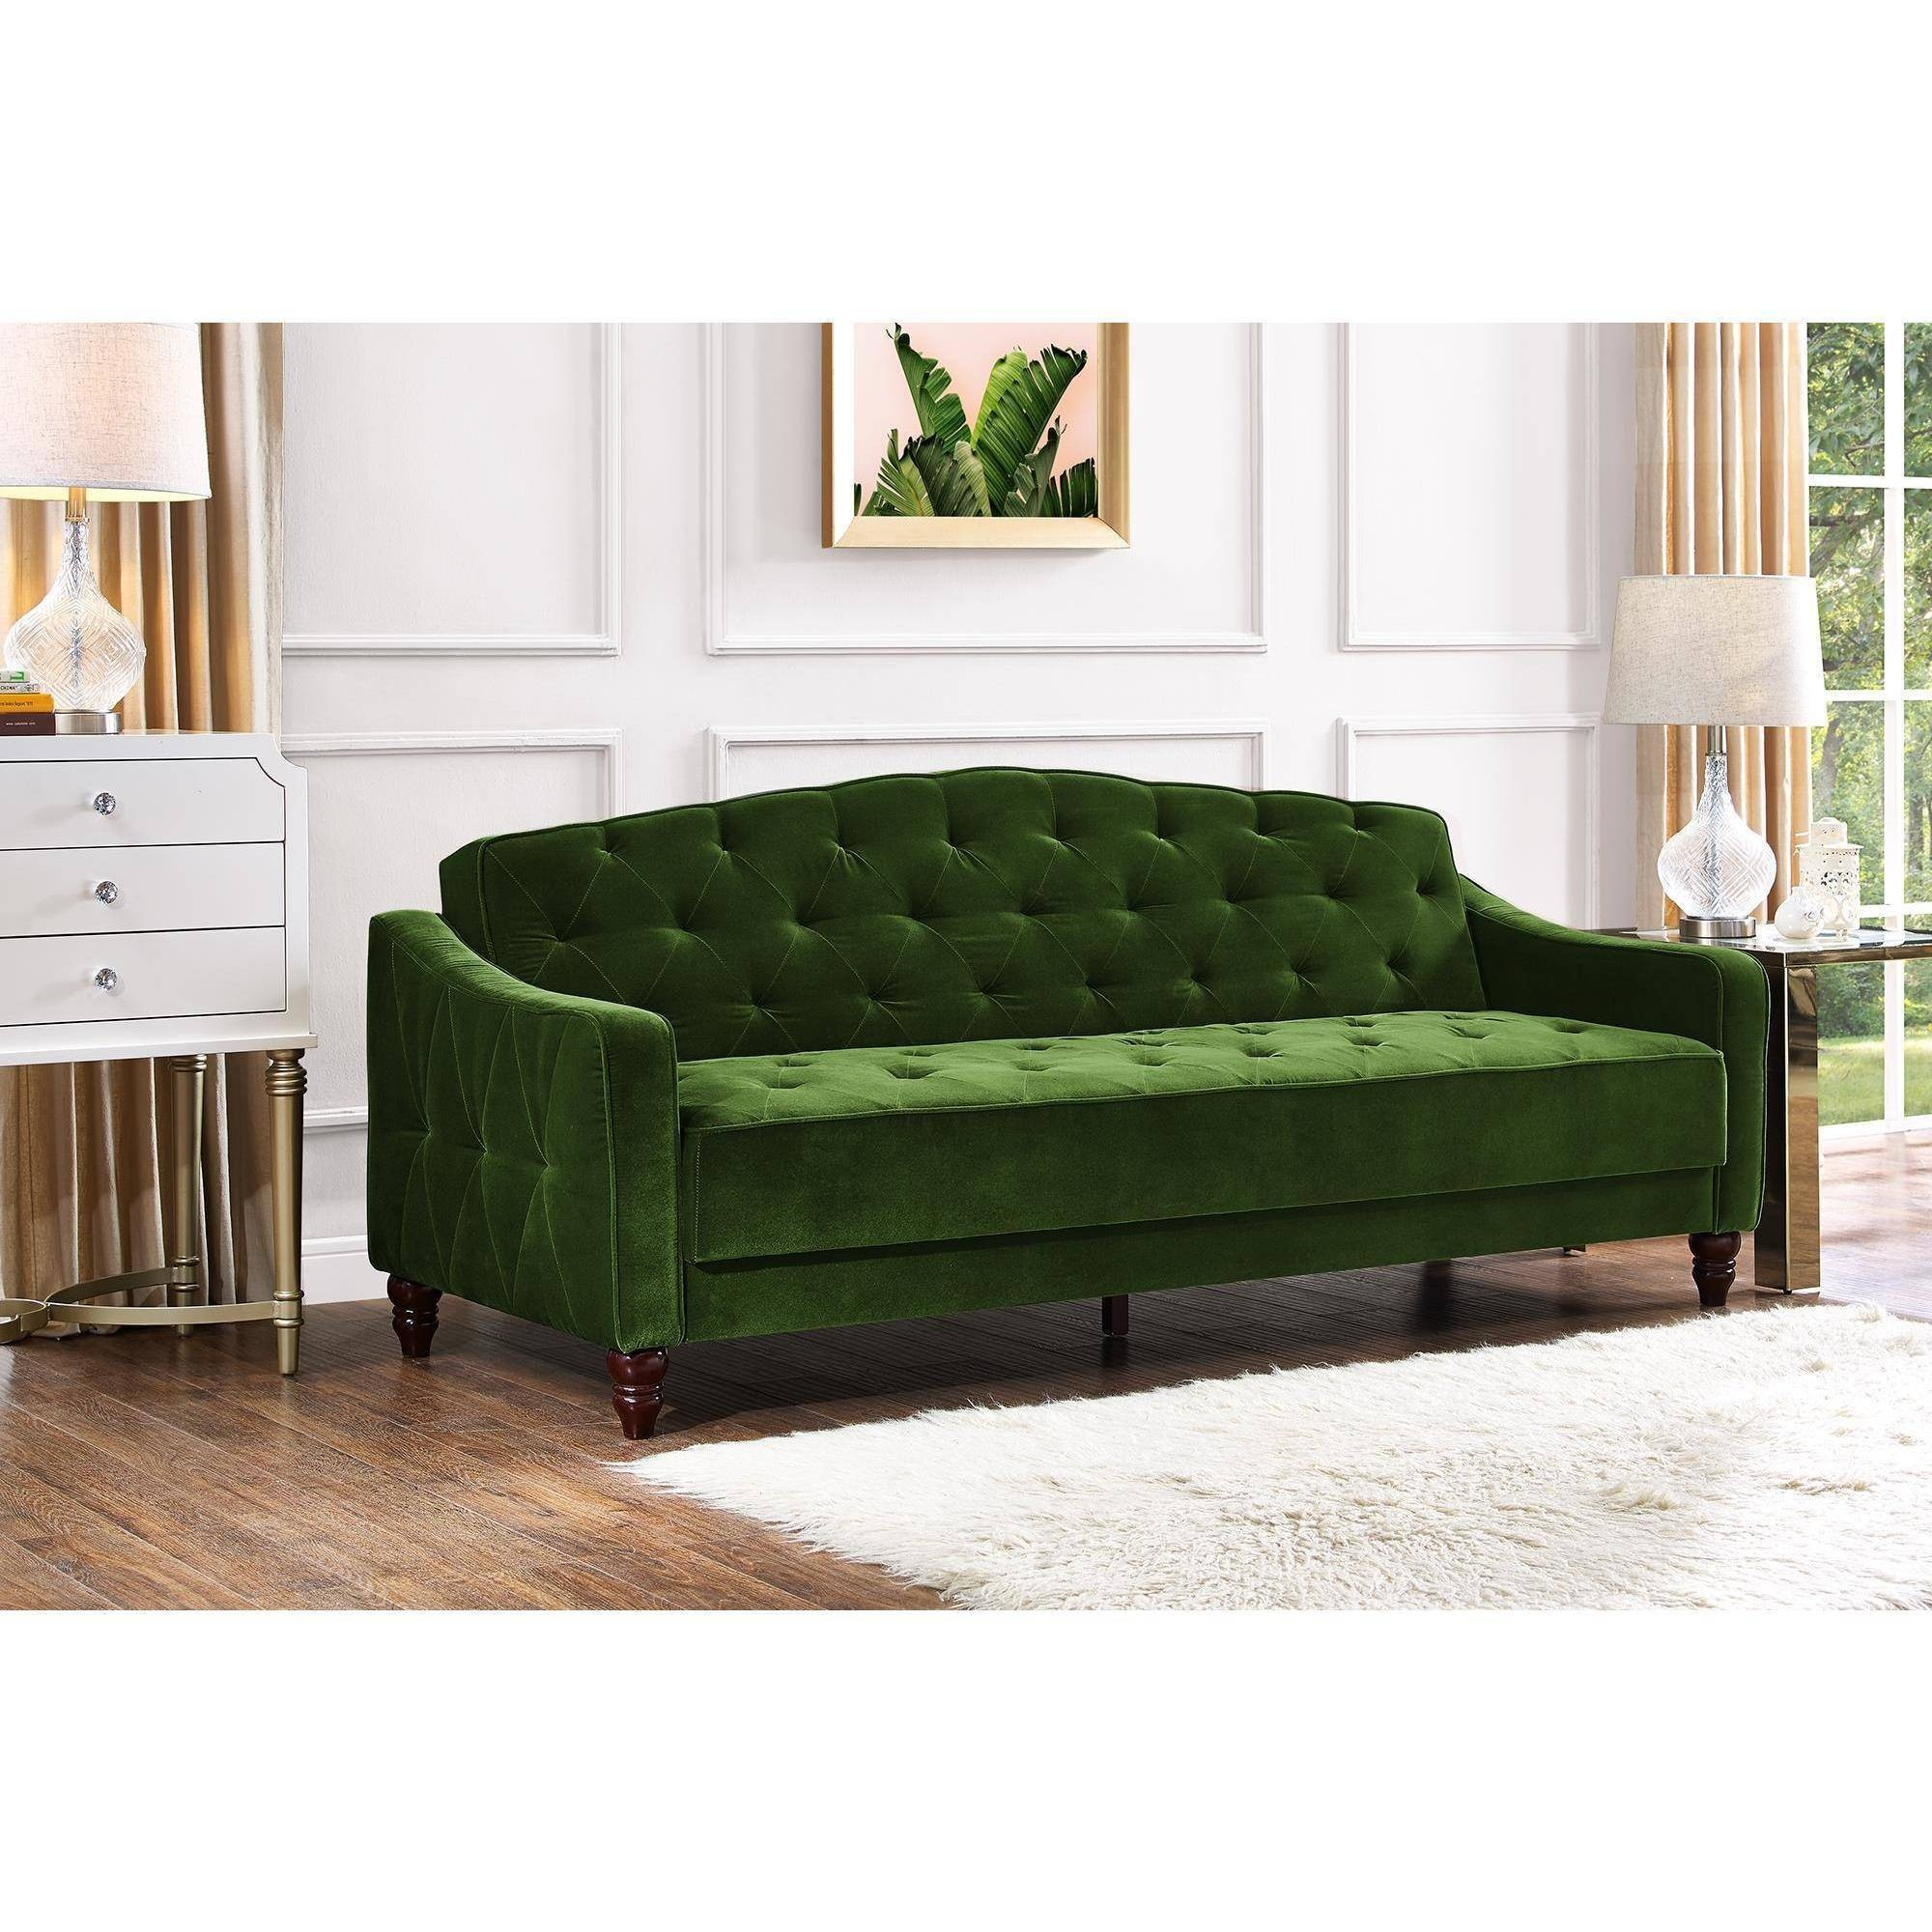 Tufted Sleeper sofa Contemporary Novogratz Vintage Tufted sofa Sleeper Ii Multiple Colors Portrait